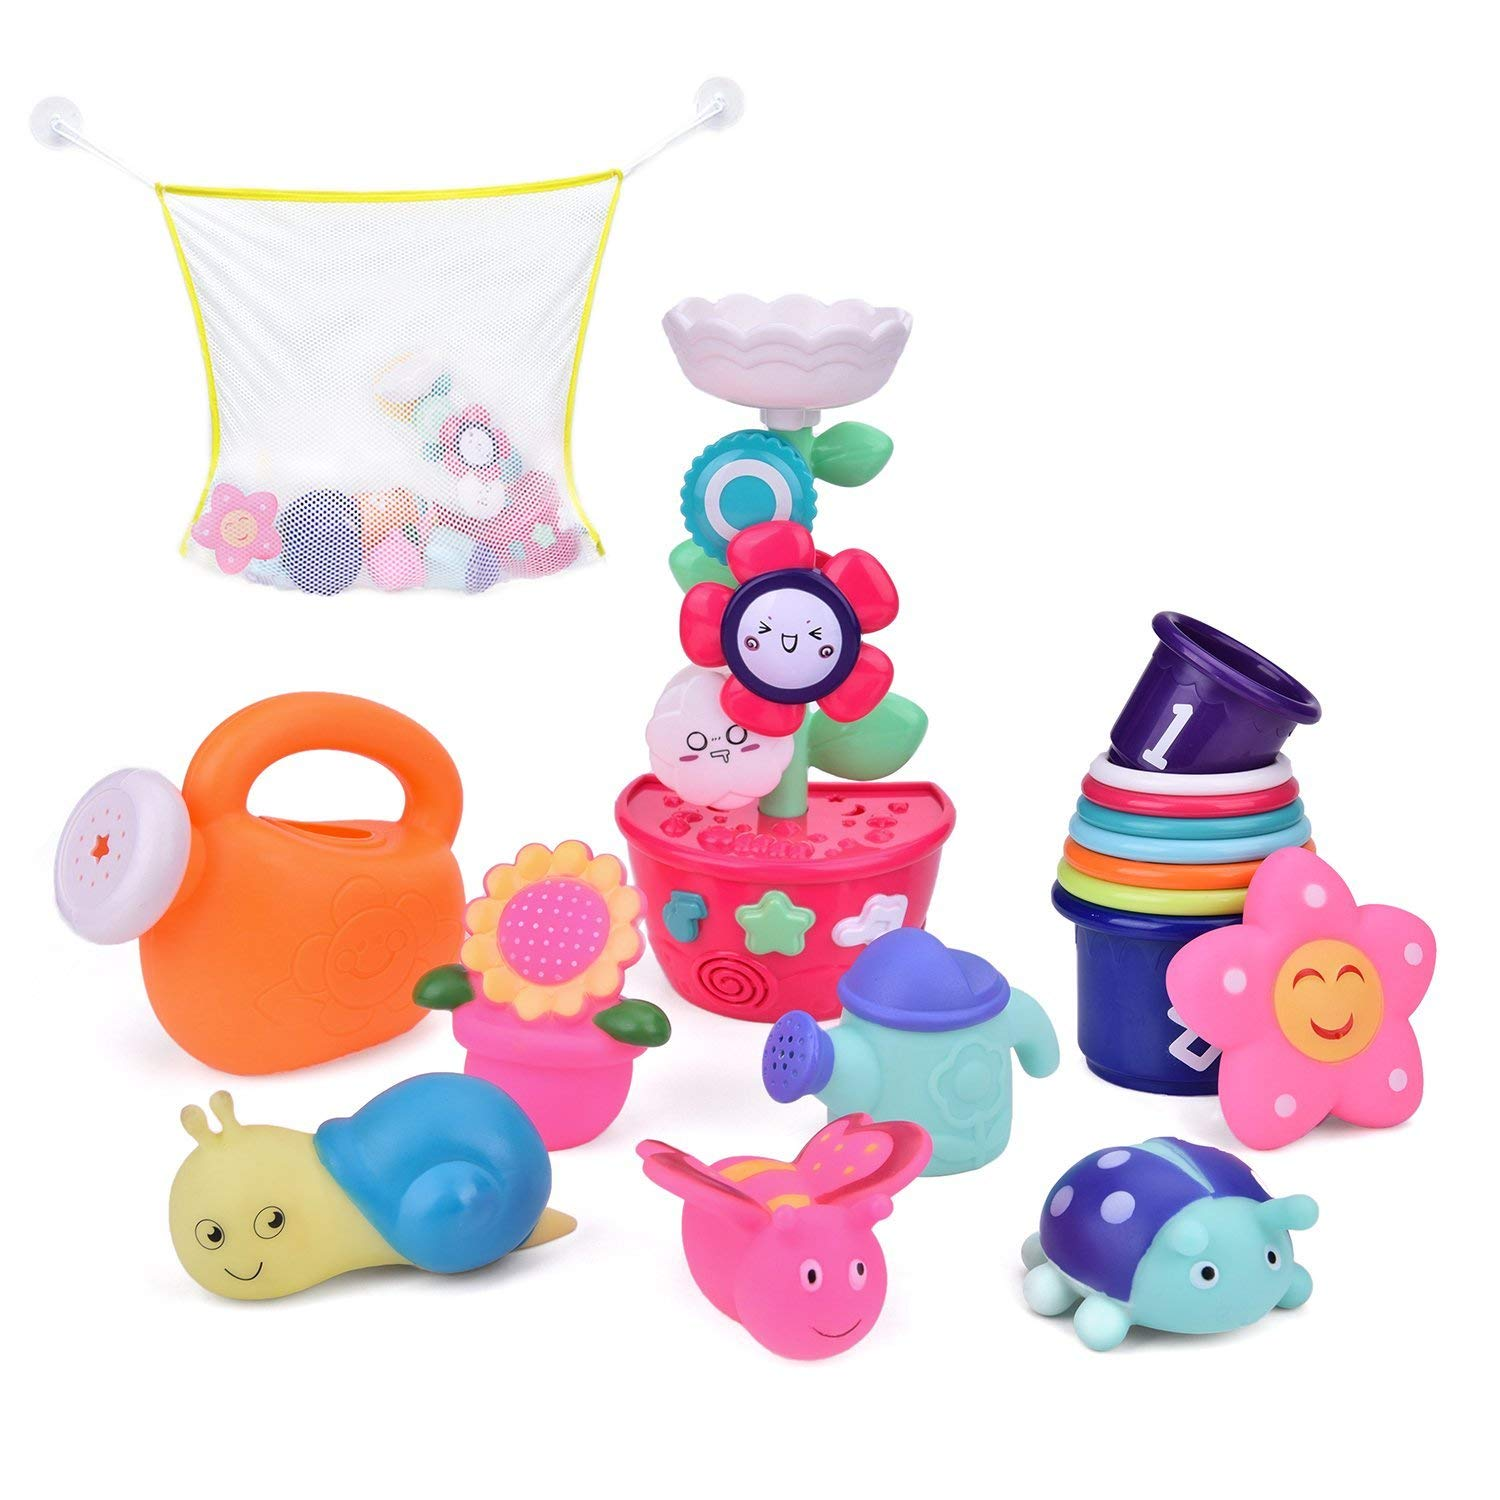 9 PCs Bath Toys Toddlers, Flower Waterfall Water Station Garden Squirter Toys, Stacking Cups Watering Can, Bath Toy Organizer Included Gift for Kids B07FPGL1CP